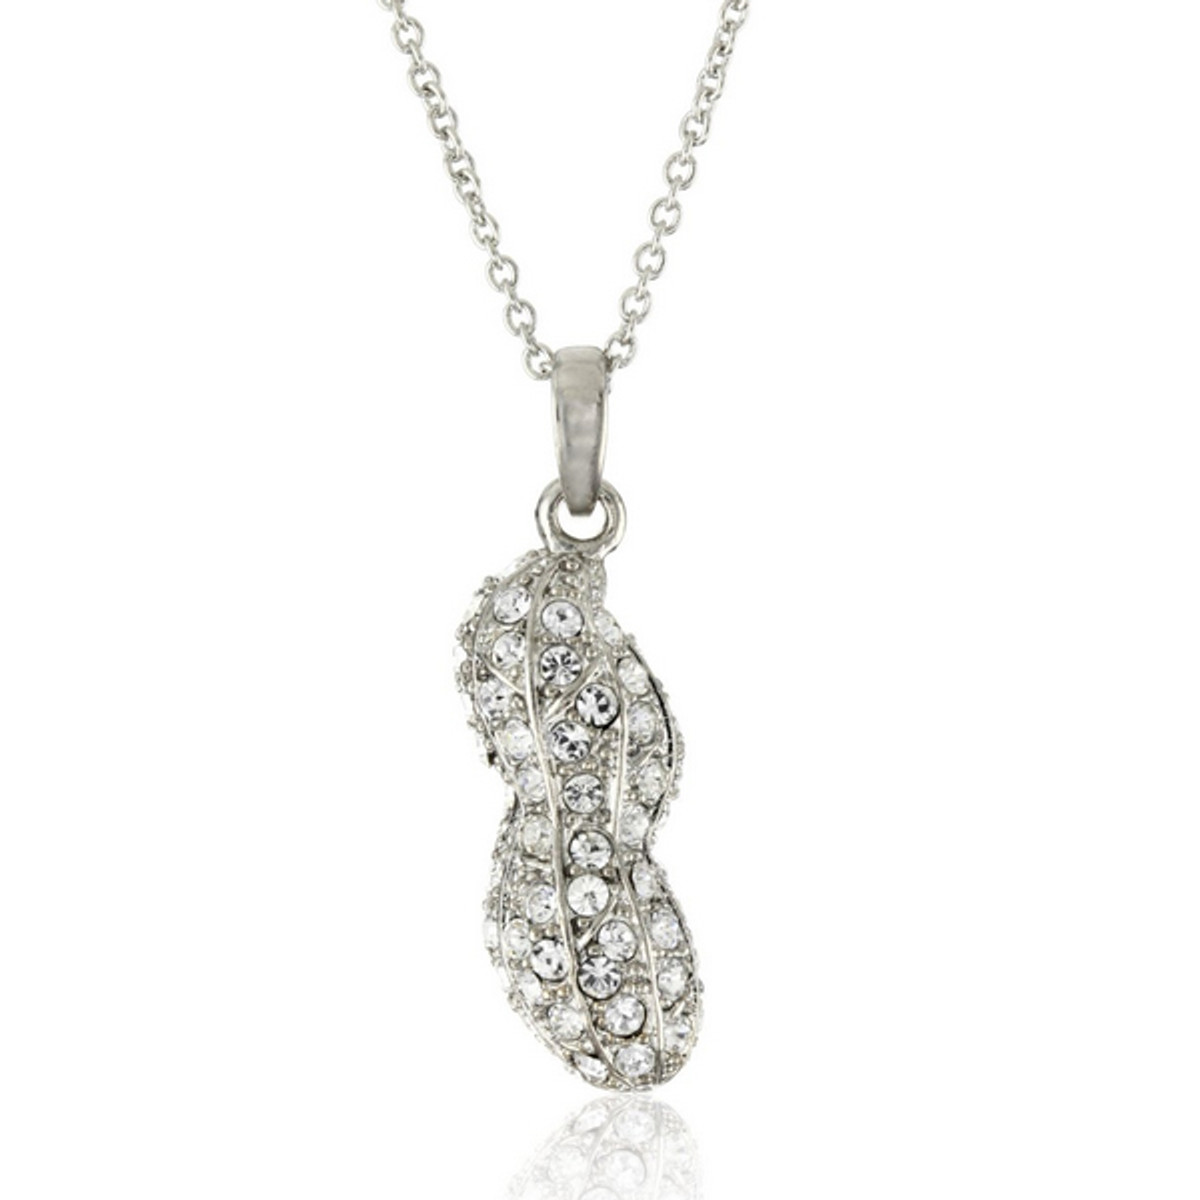 Andrew Hamilton Crawford Jewelry Sparkly Peanut Necklace Silver Necklace